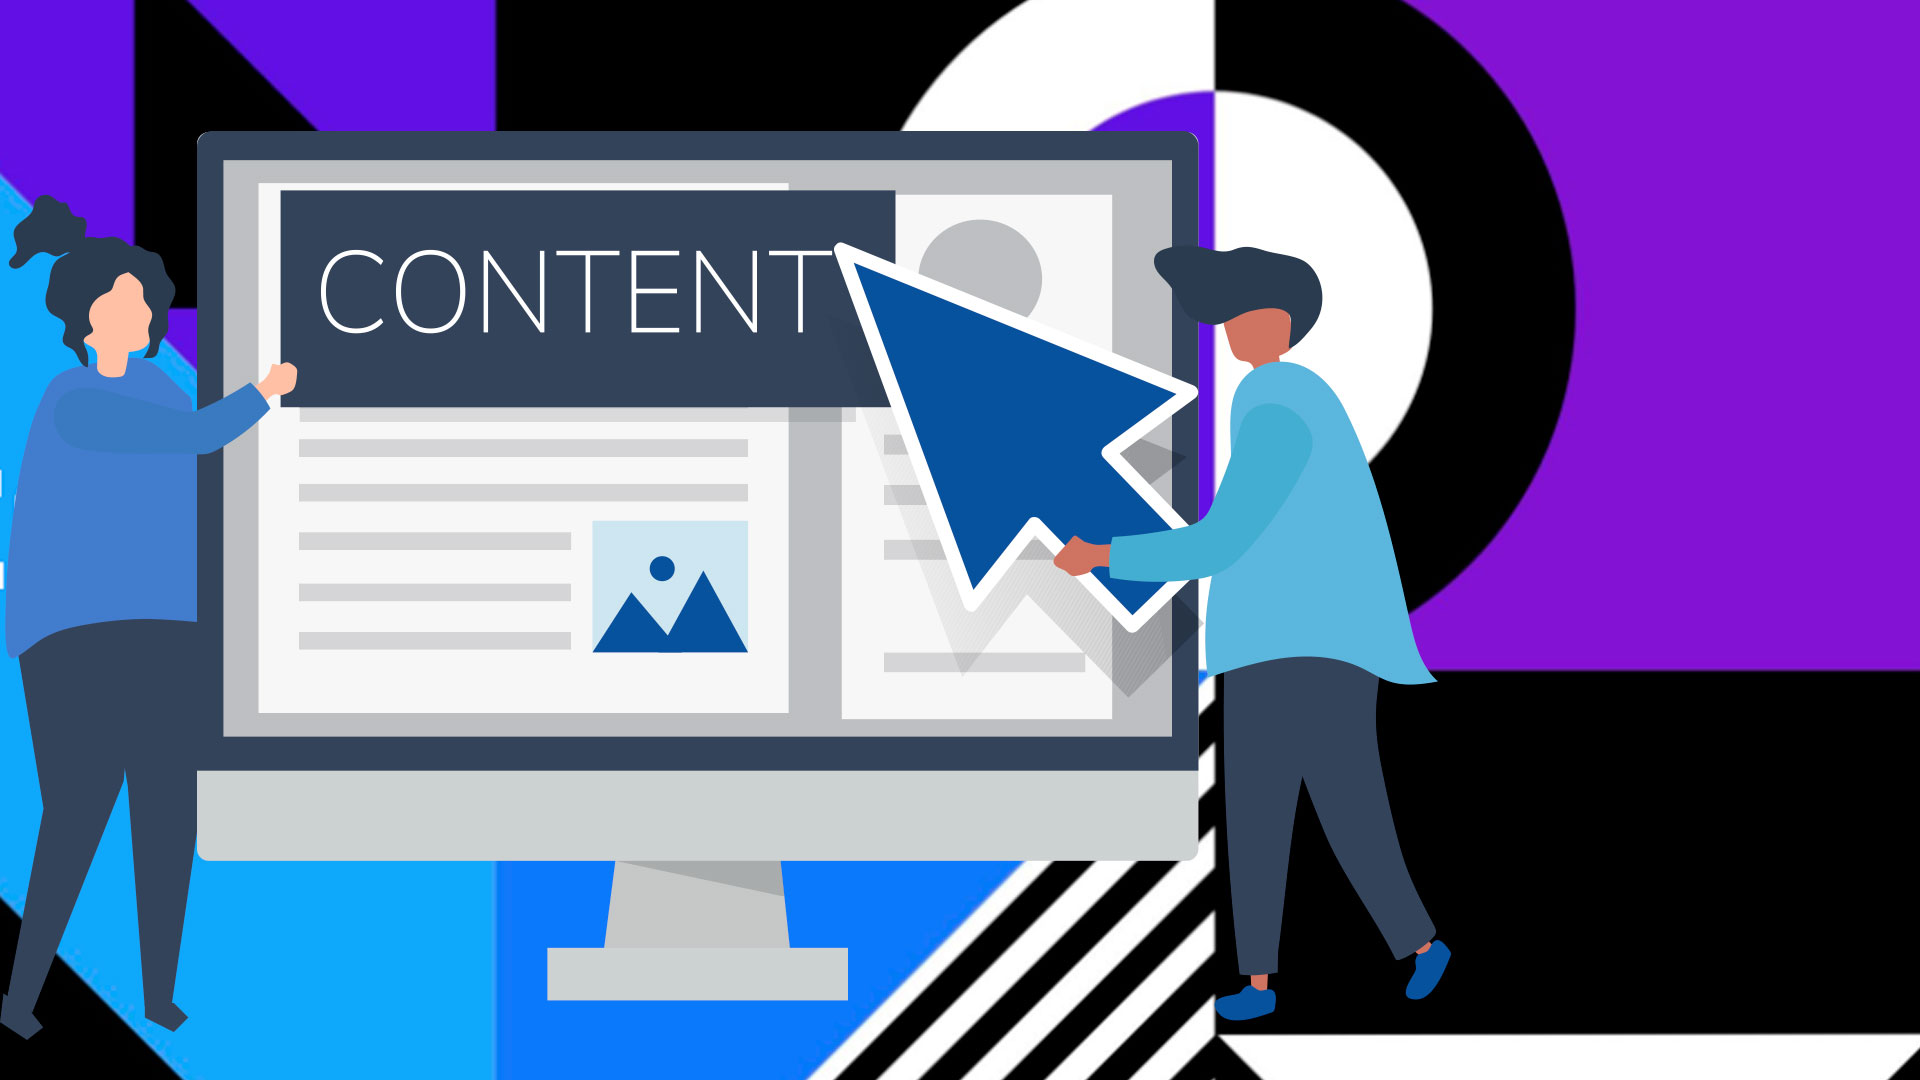 Content rules your marketing strategy.